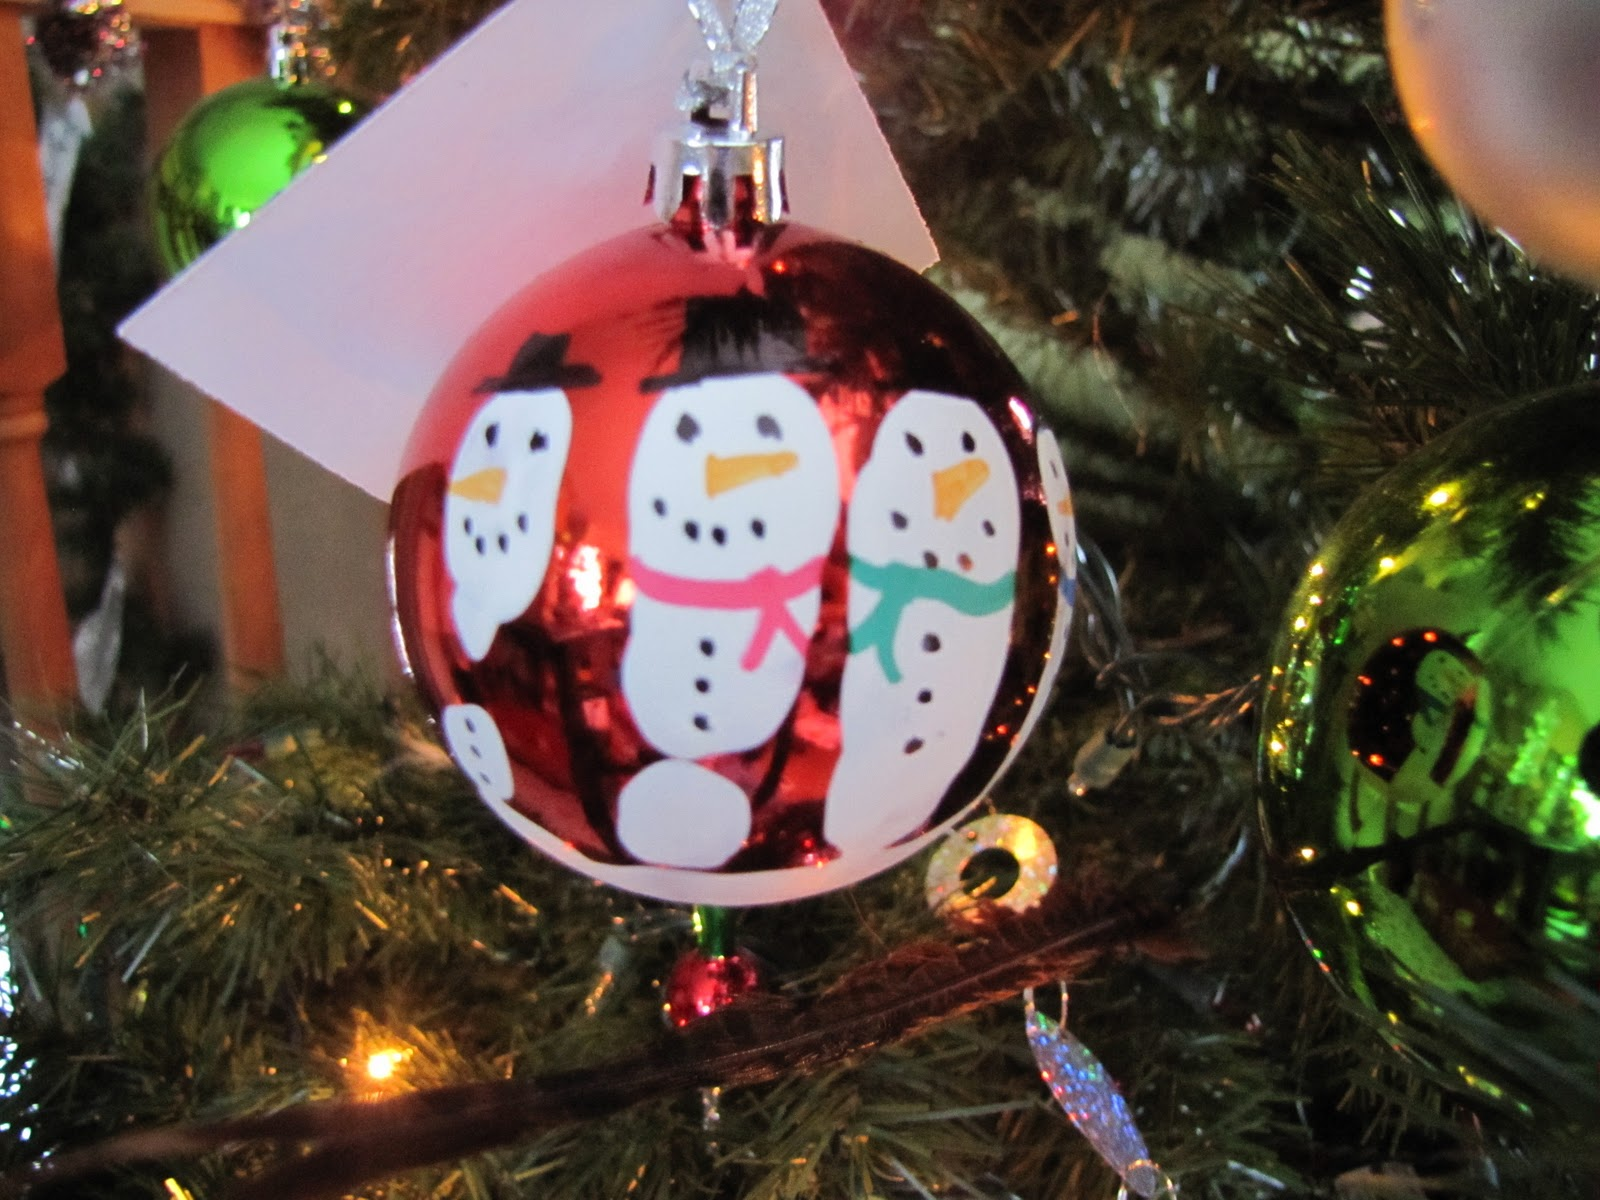 Melted Snowman Ornament Poem I also added this little poem